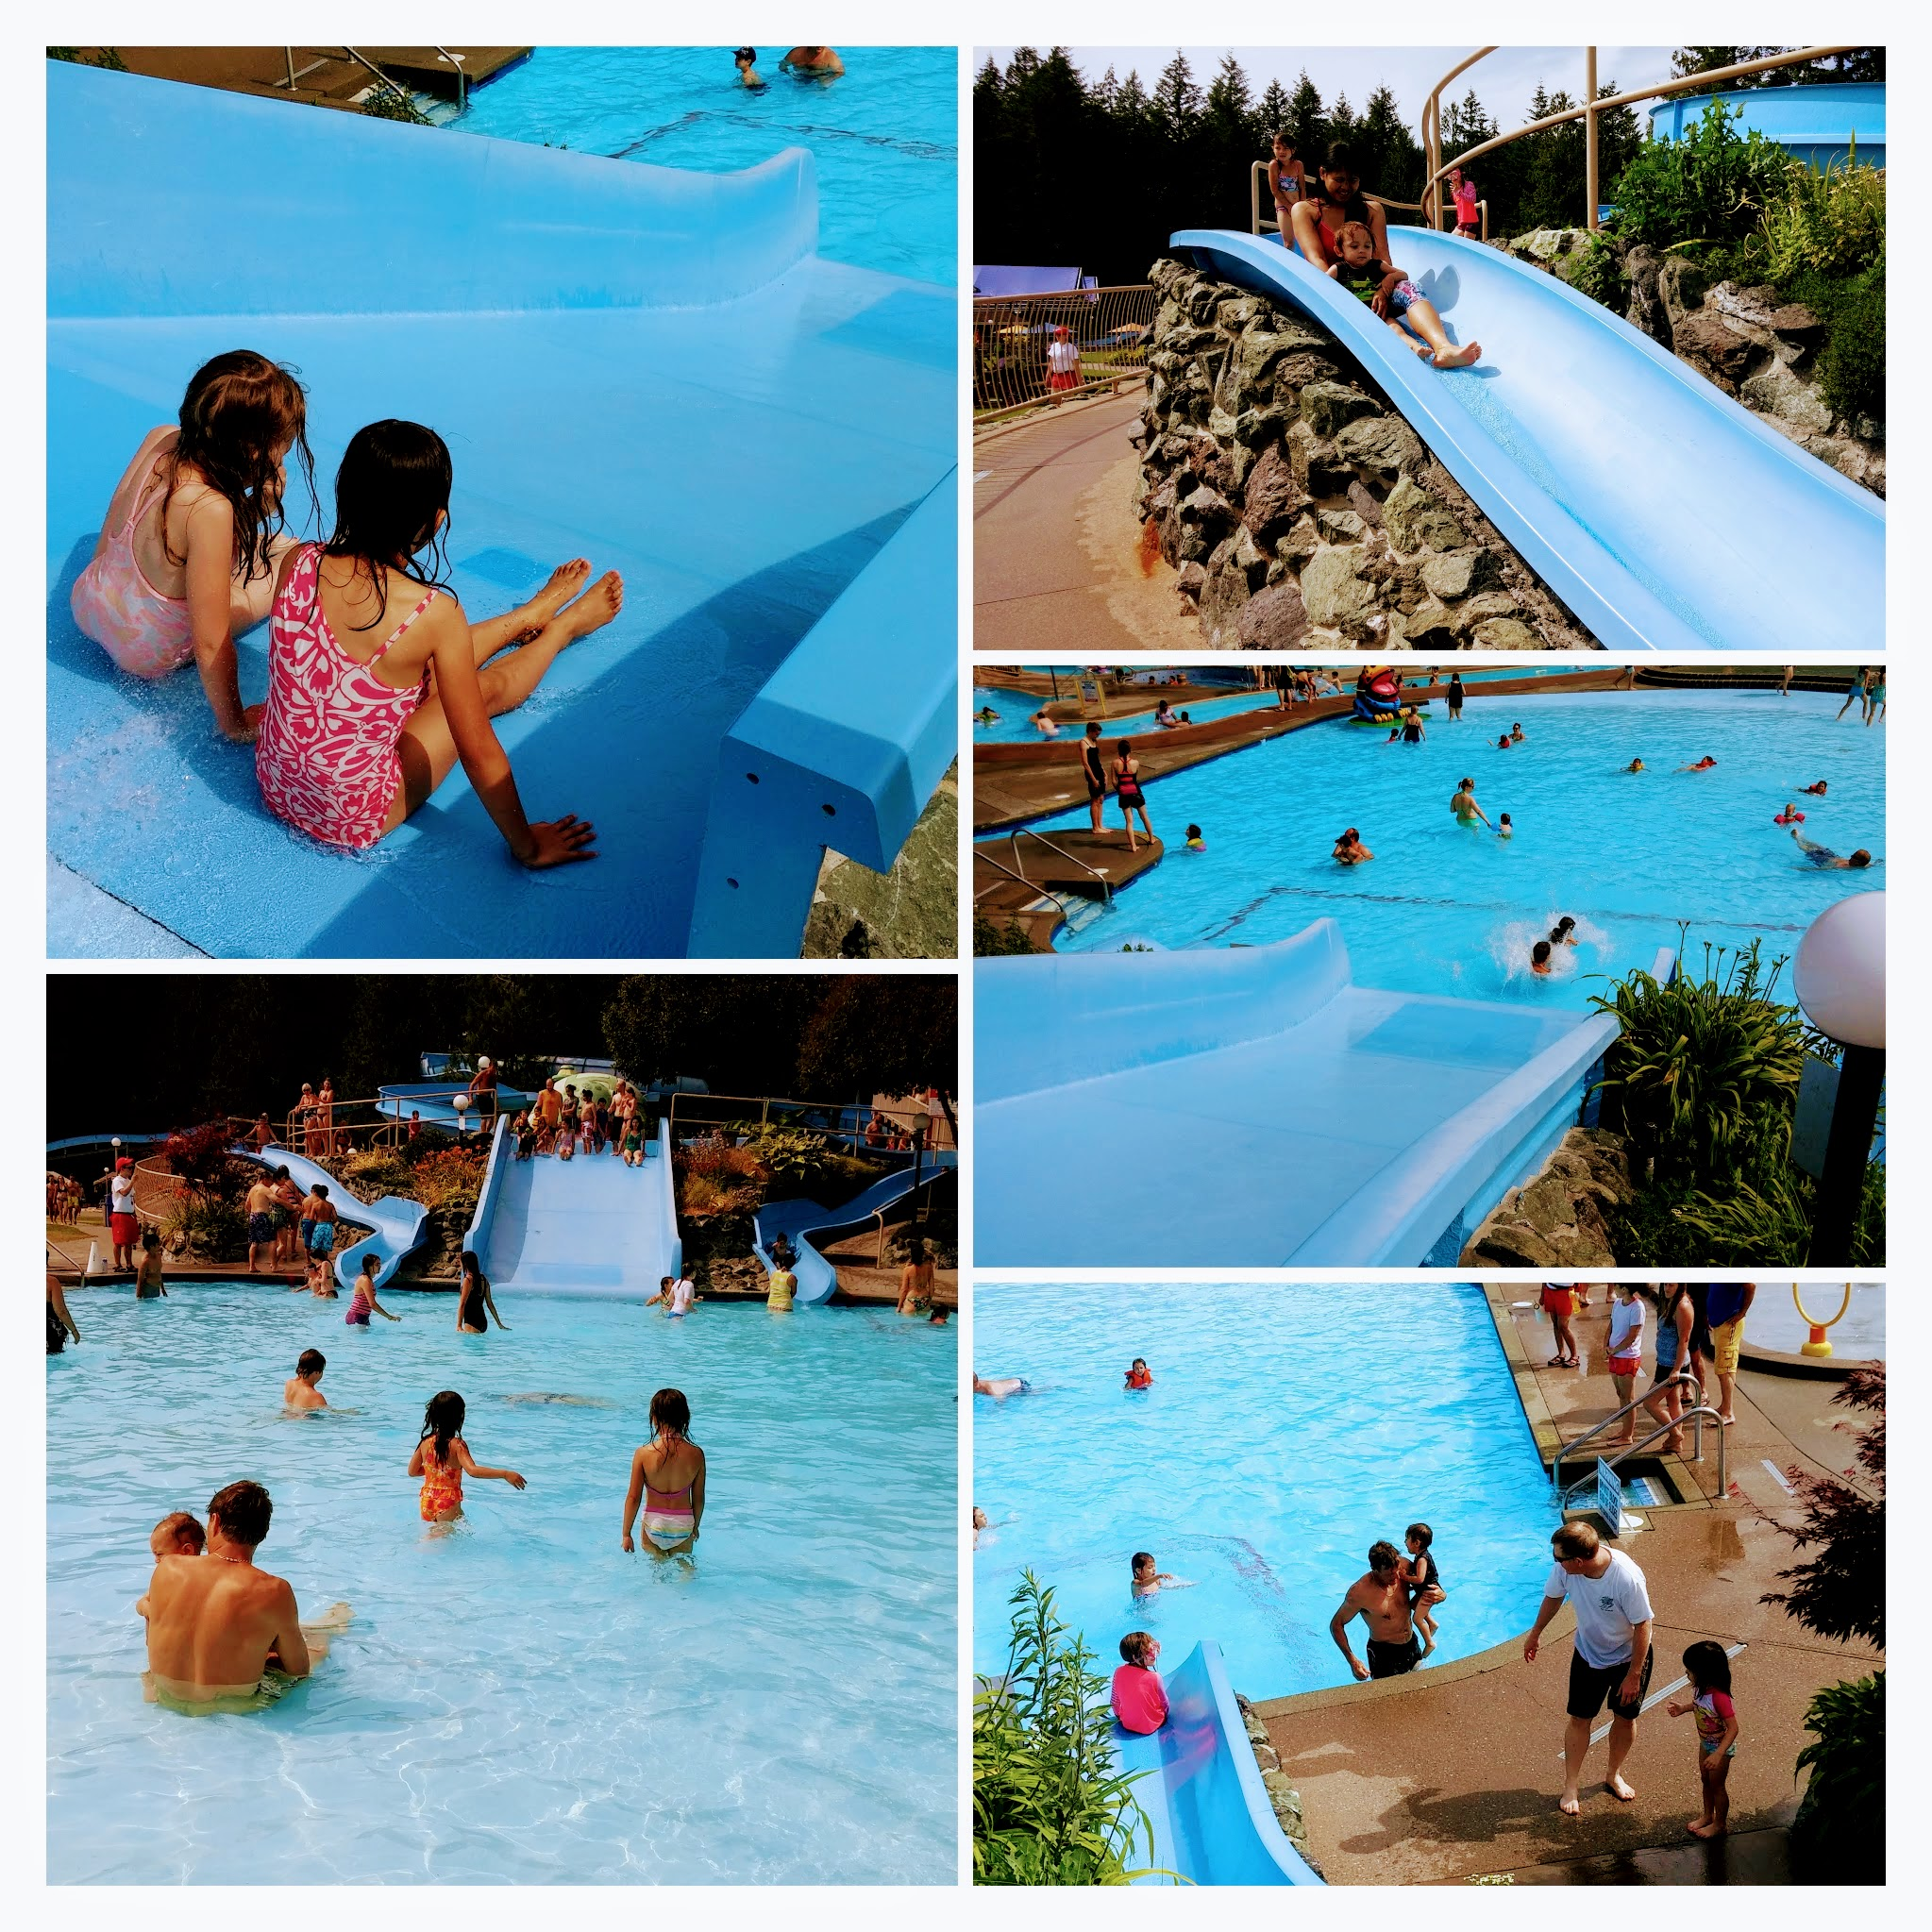 Small waterslide for small children, accompanied by adults.